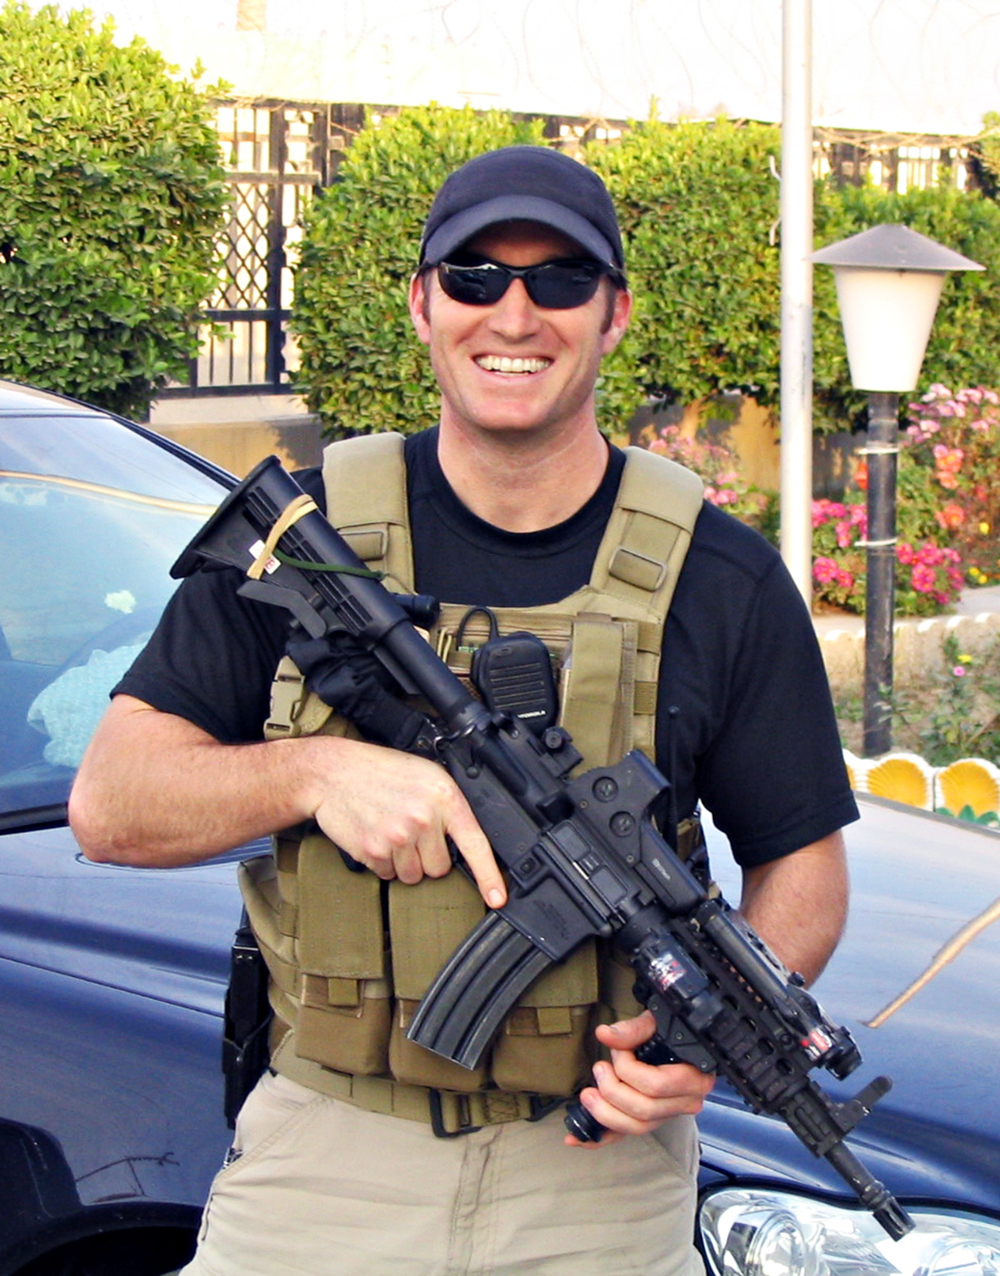 Former U.S. Navy SEAL Glen Doherty, 42, of Winchester, Massachusetts, assigned to a State Department security detail in Benghazi, Libya, died in an attack on a U.S. consulate on September 11, 2012. He is survived by his parents, Ben and Barbara, sister Katie, and brother Greg.